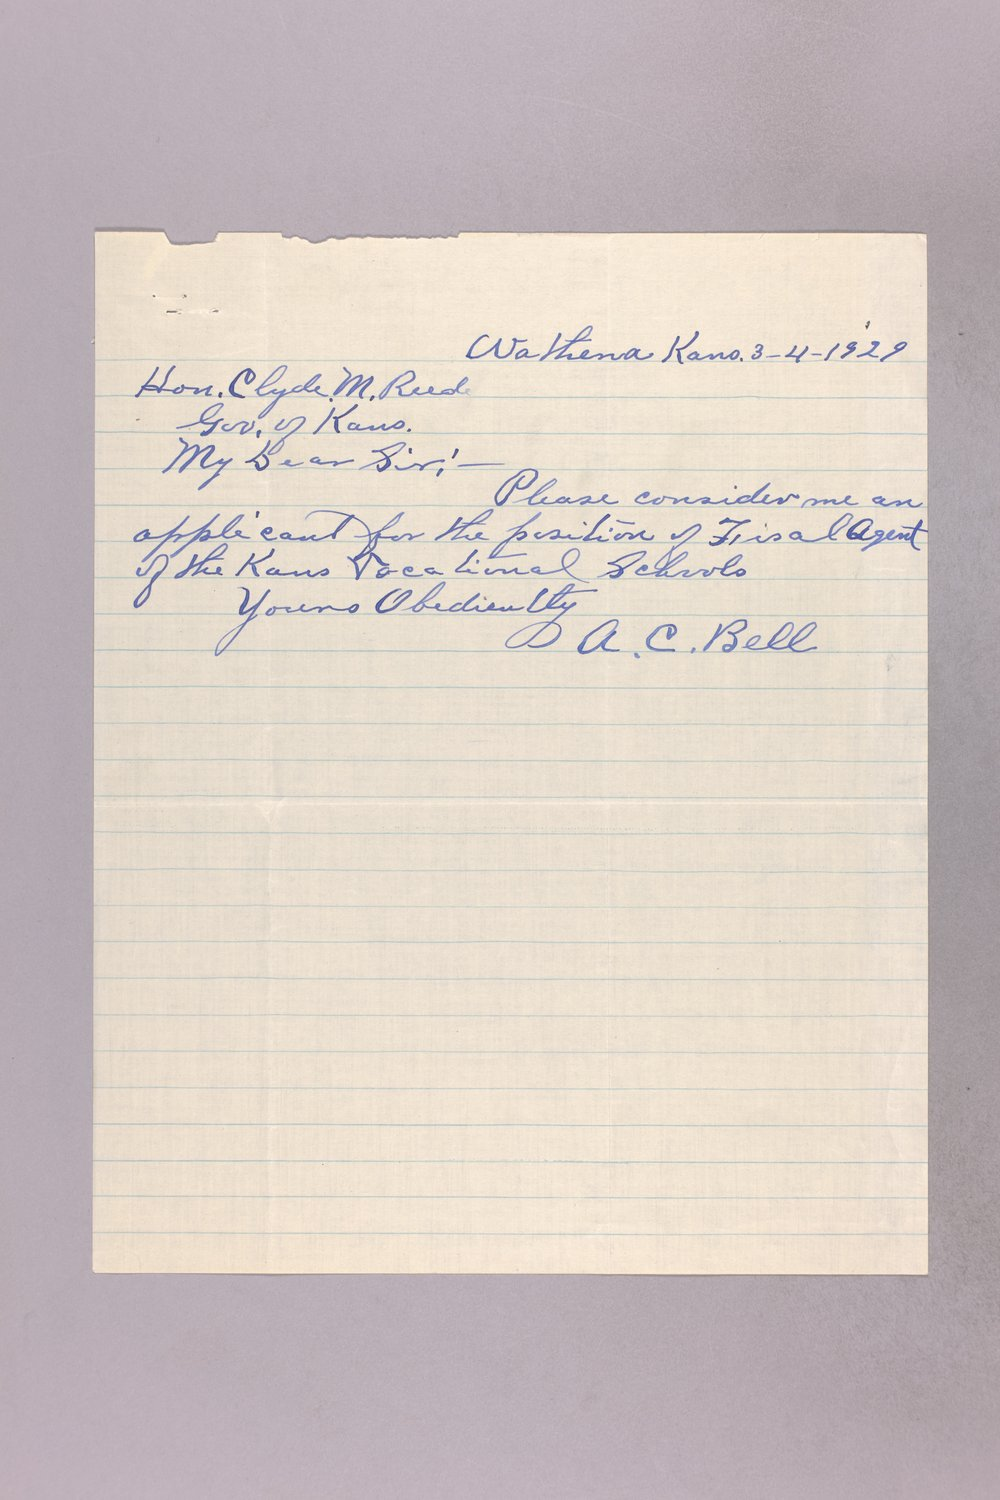 Governor Clyde M. Reed correspondence, vocational school applications - 1